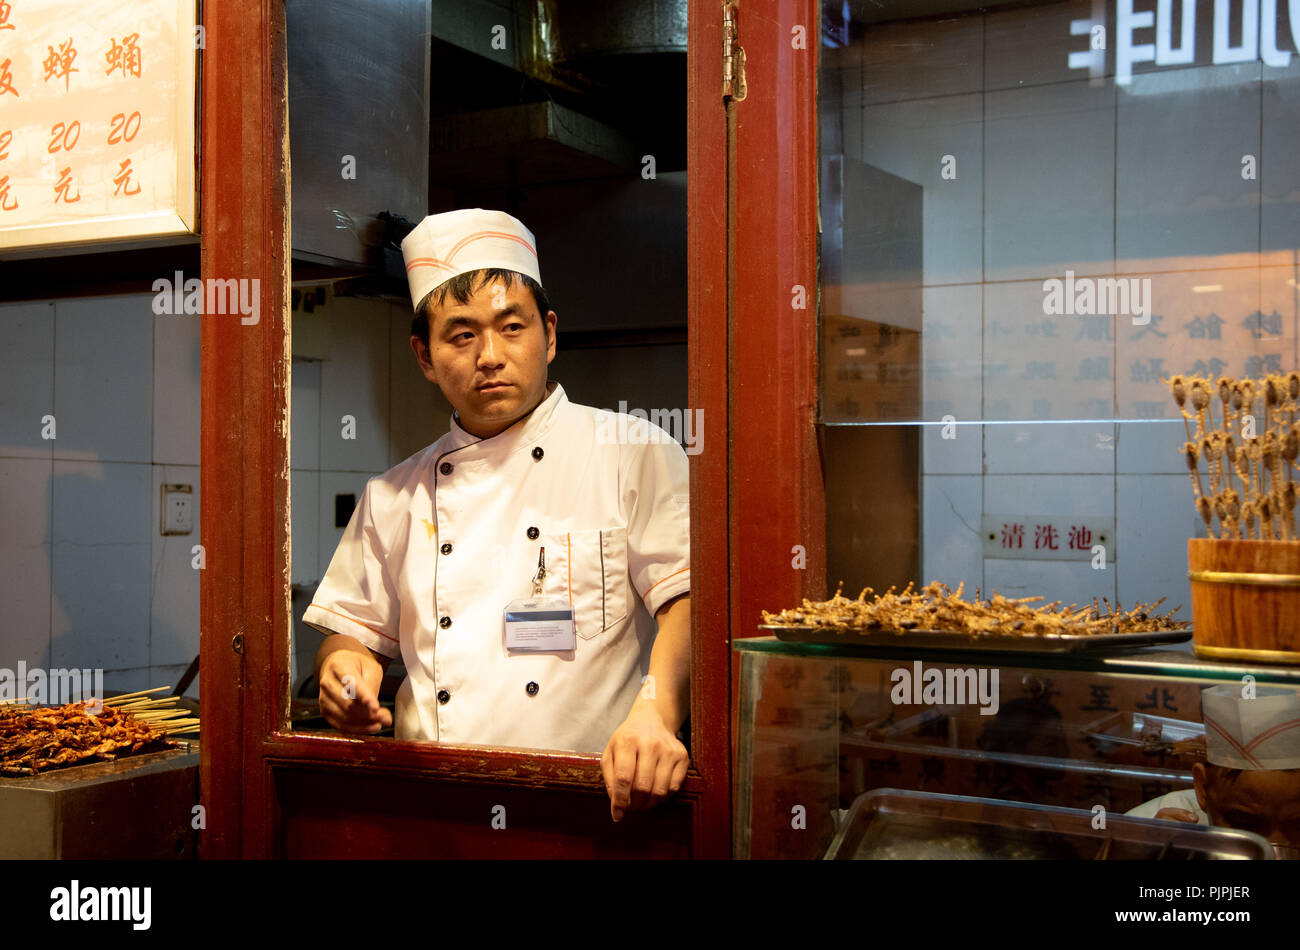 Beijing, China – June 1 2018: Chef in his white uniform cooking traditional Chinese  food on Snack street food market at Beijing in China - Stock Image